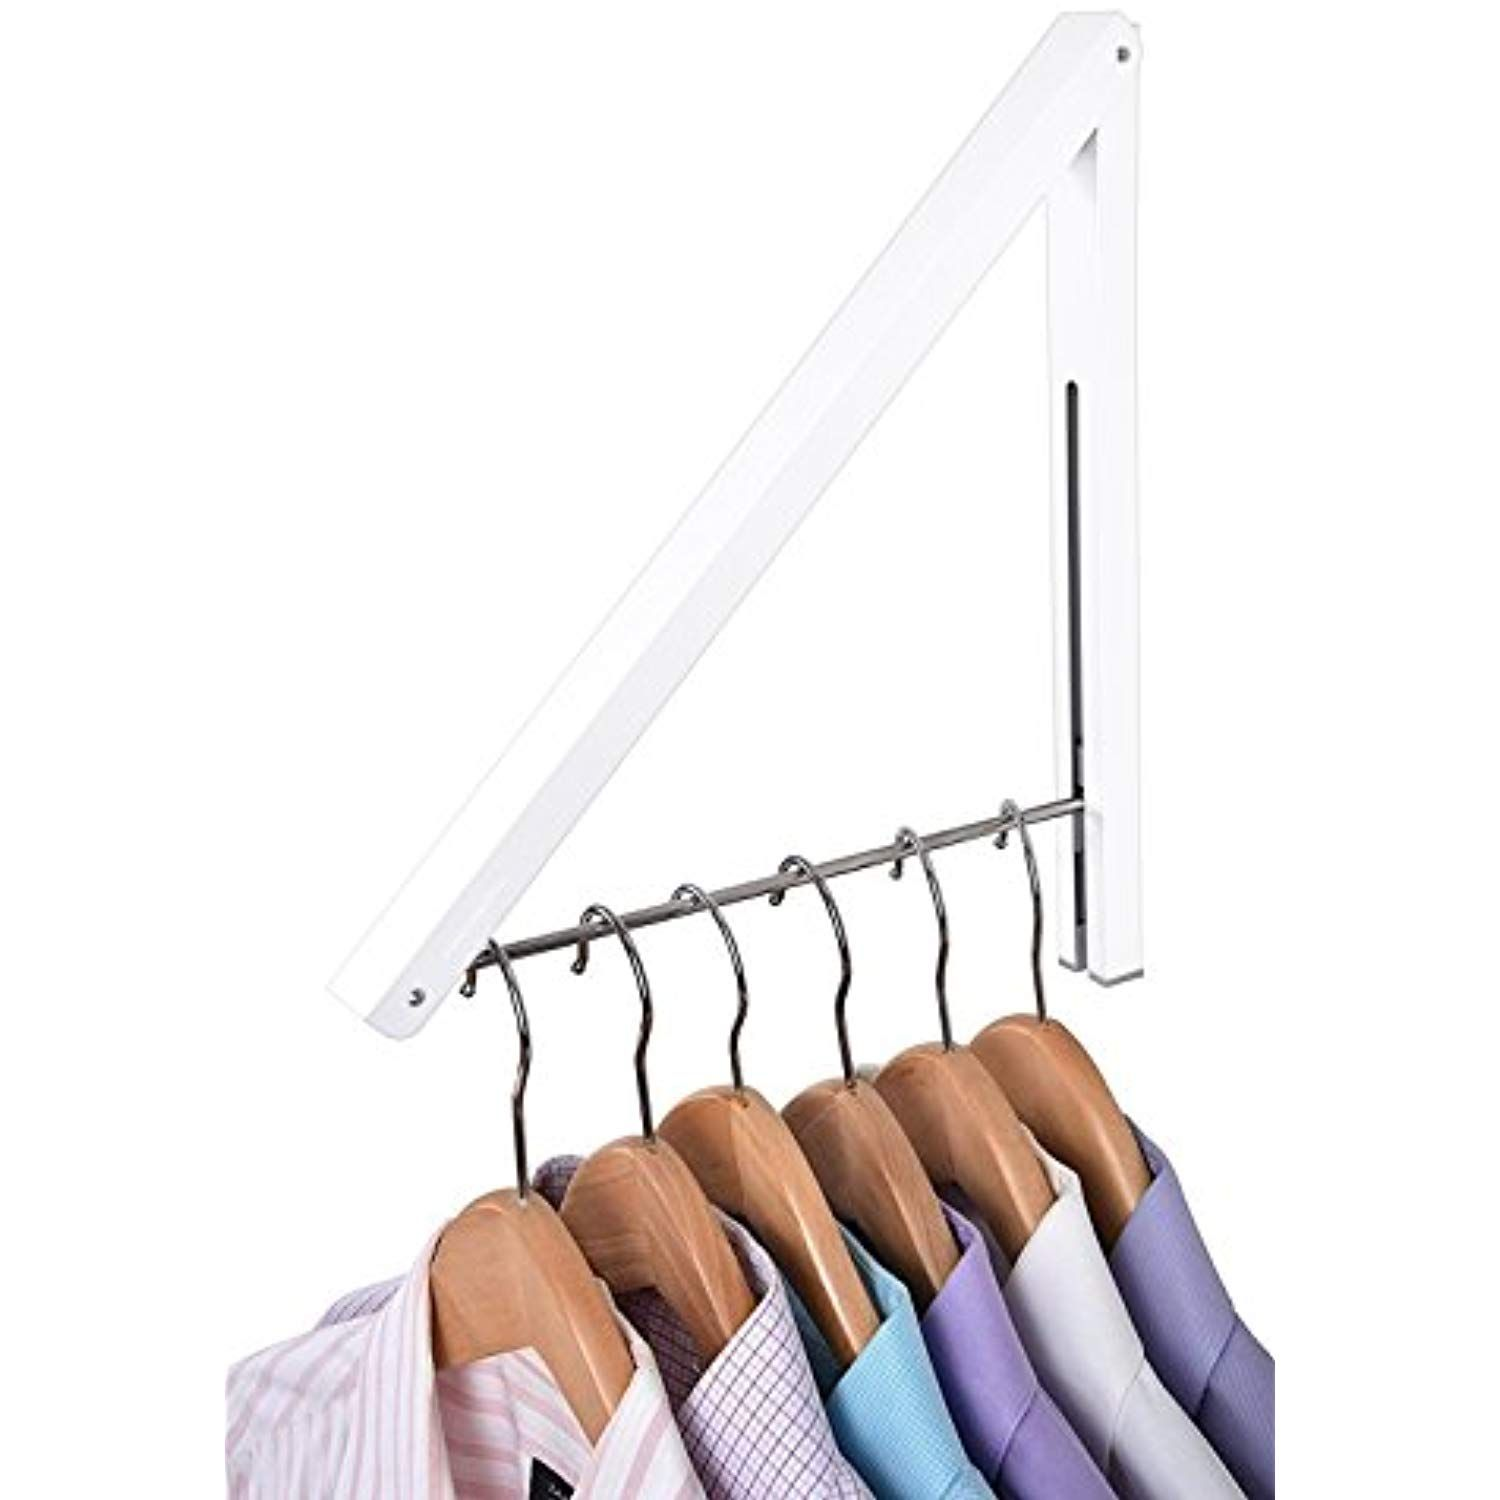 Stock Your Home Folding Clothes Hanger Wall Mounted Retractable Clothes Rack Aluminum Easy Installatio Diy Clothes Hanger Rack Folding Clothes Clothes Hanger